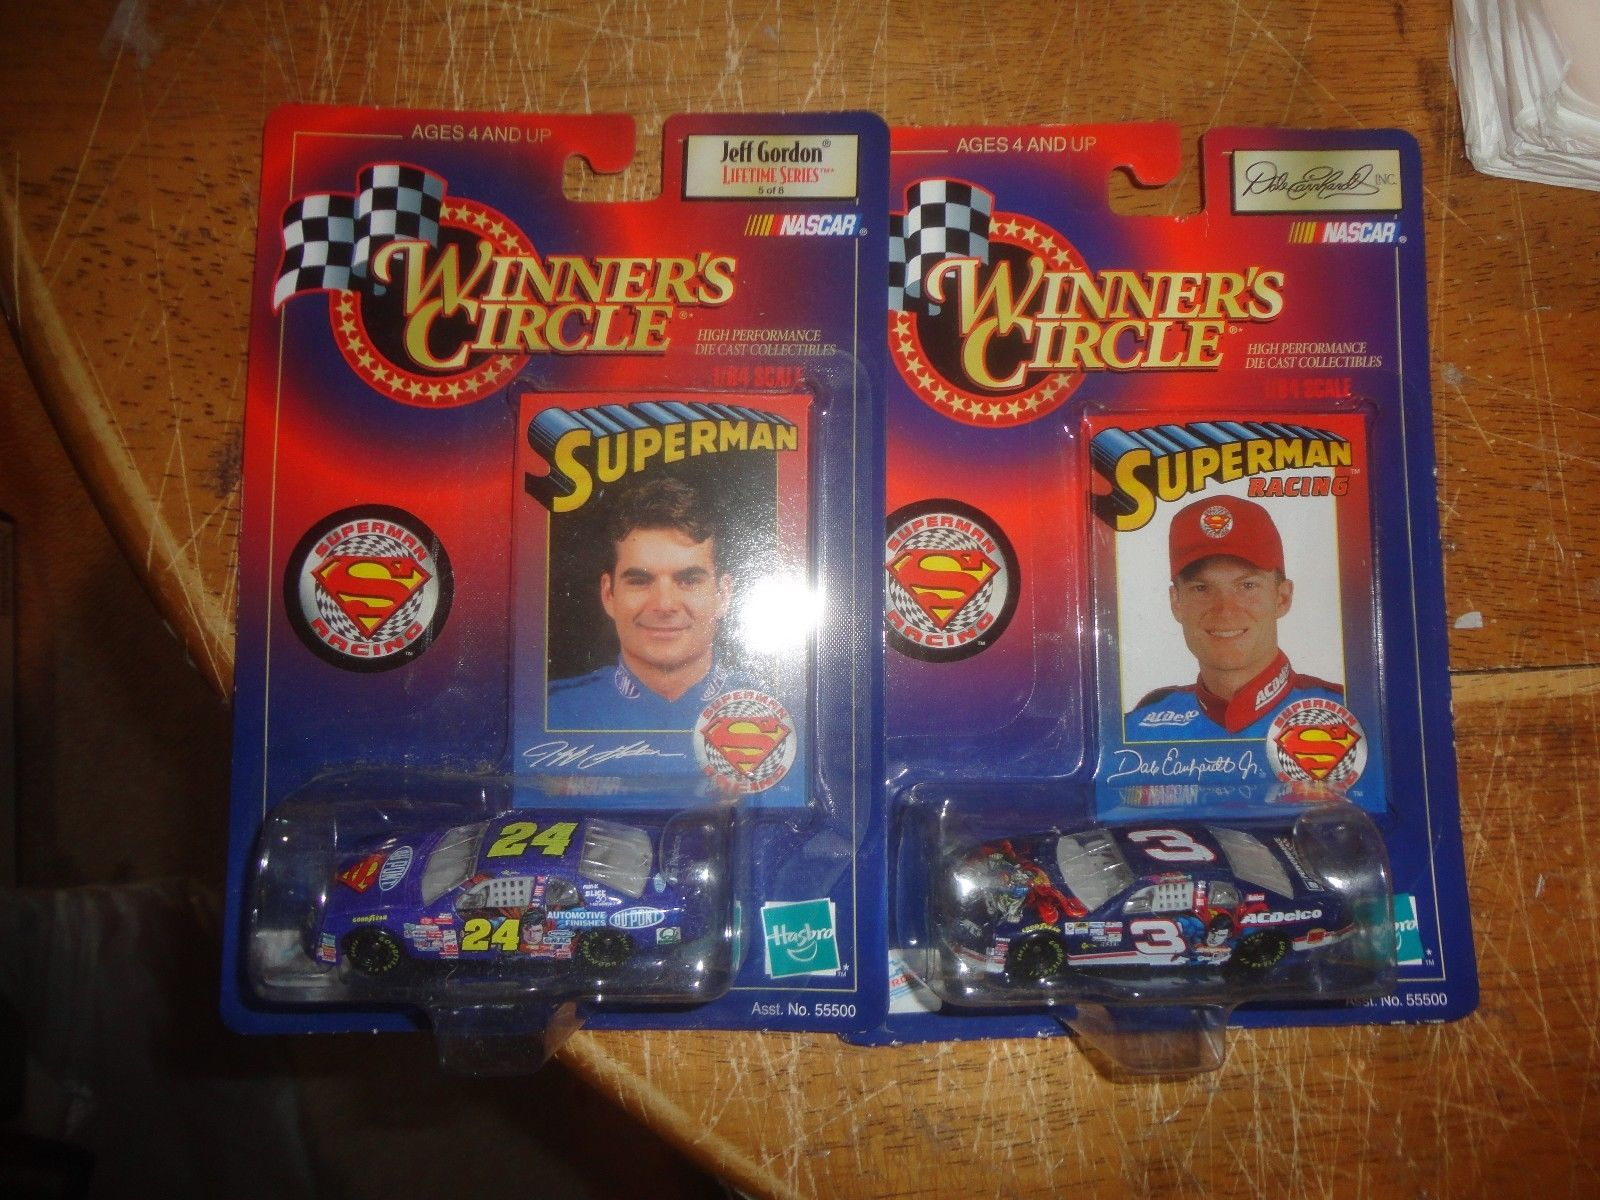 winners-circle-winners-circle-1_64-scale-superman-cars-jeff-gordon-and-dale-earnhardt-jr_-unopen-1044742697.jpg